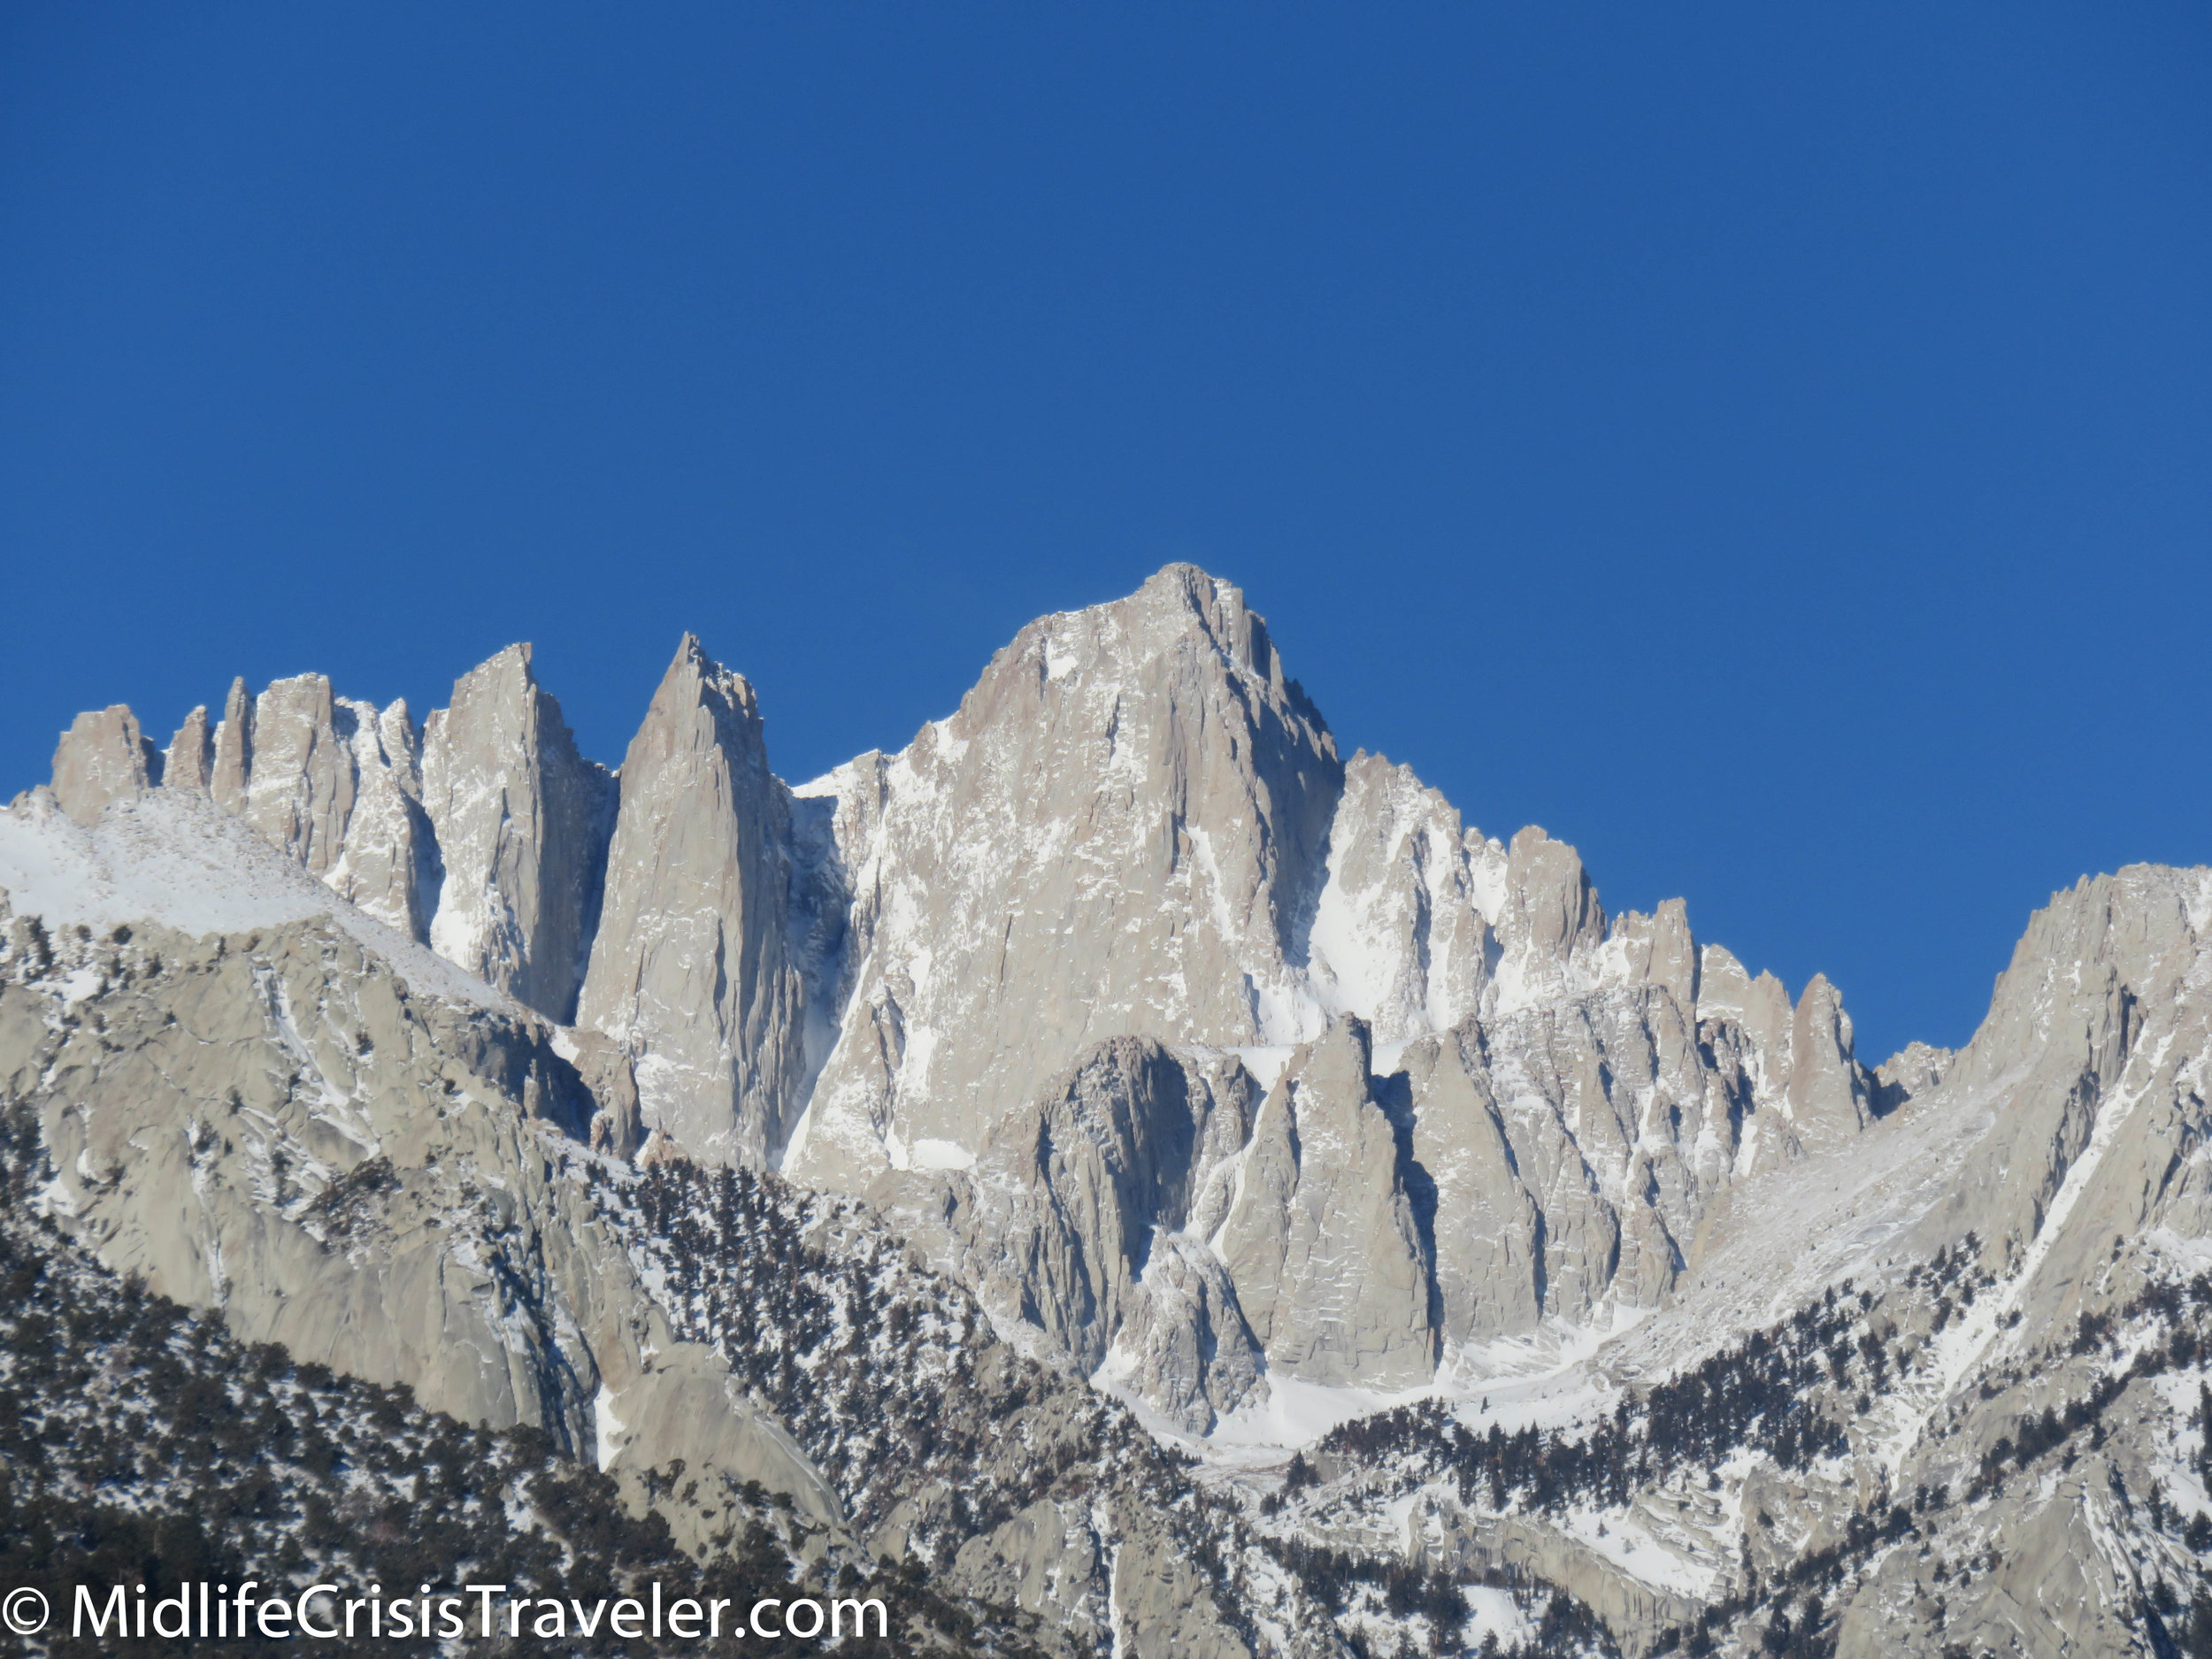 Mt. Whitney is the tallest mountain in the lower 48 states.